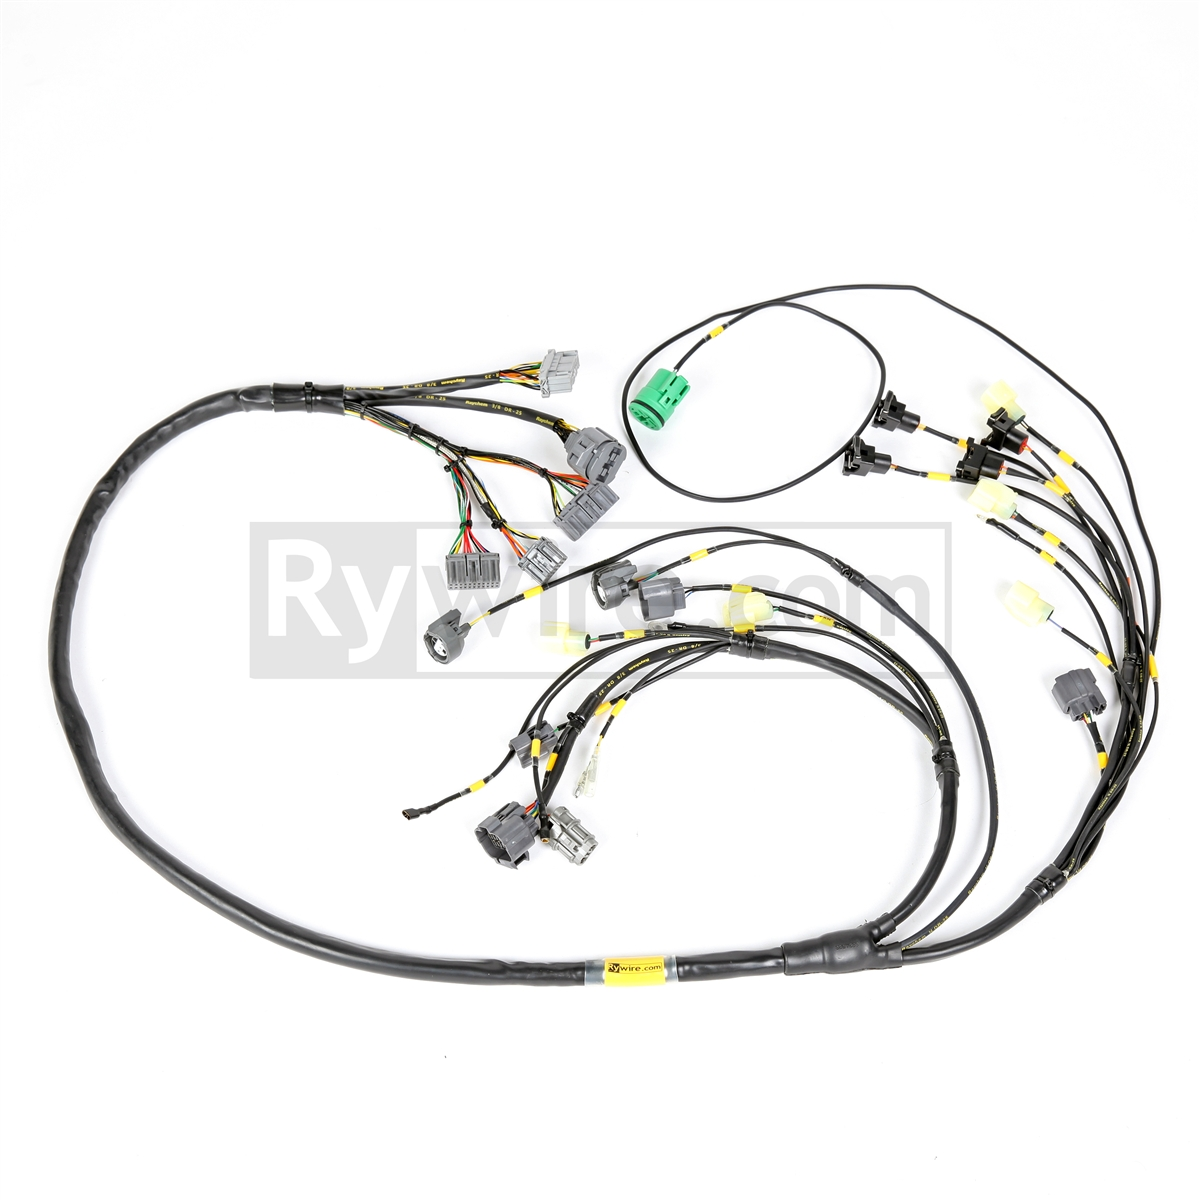 H1 Milspec 2?1402582650 rywire com mil spec f series (f20b) & h series (h22) harness engine wire harness at alyssarenee.co